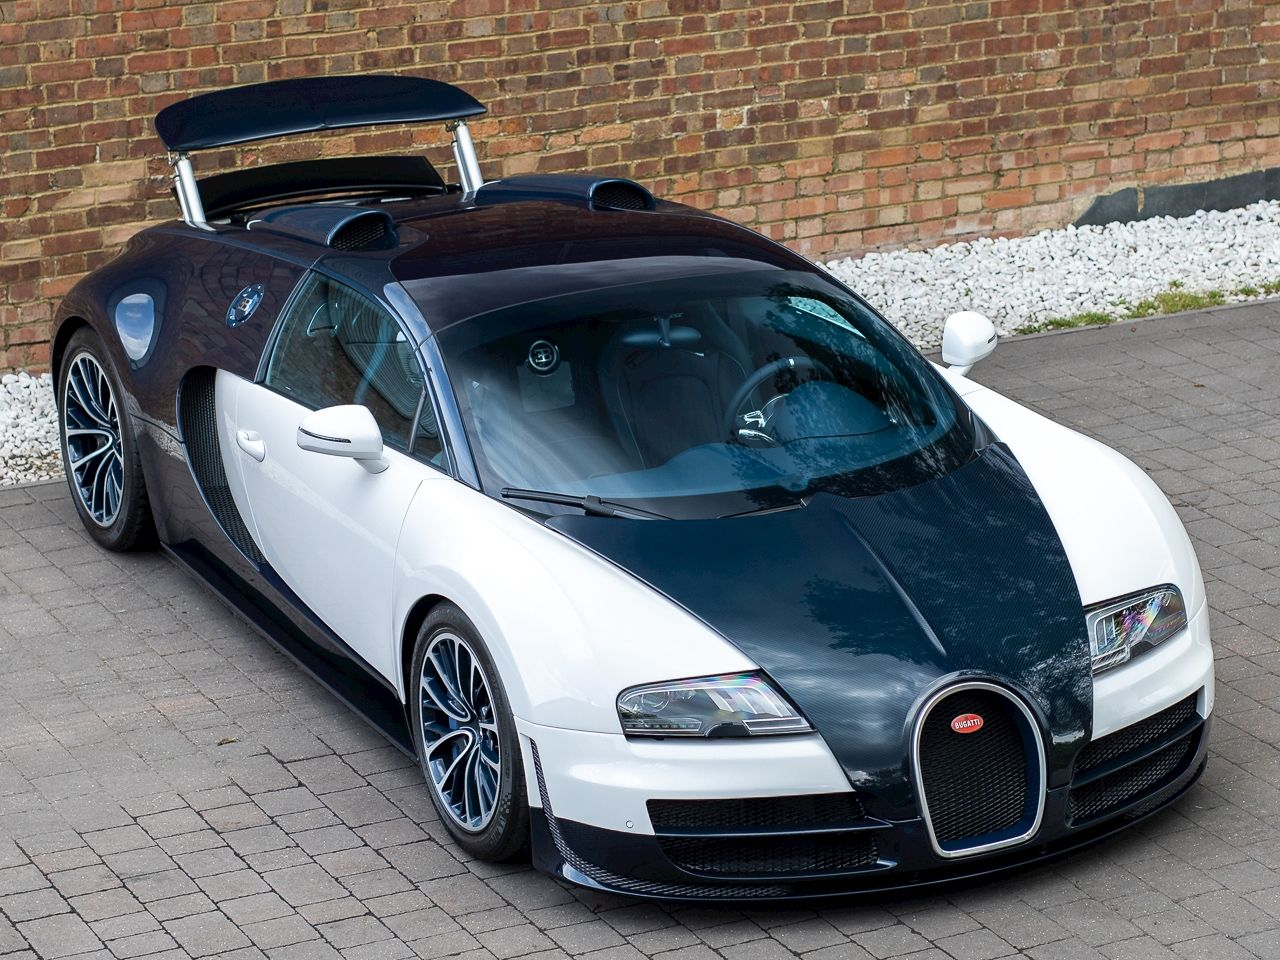 Bugatti Veyron Grand Sport Vitesse Romans International United Kingdom For Sale On In 2020 Bugatti Veyron Grand Sport Vitesse Bugatti Veyron Bugatti Veyron Sport